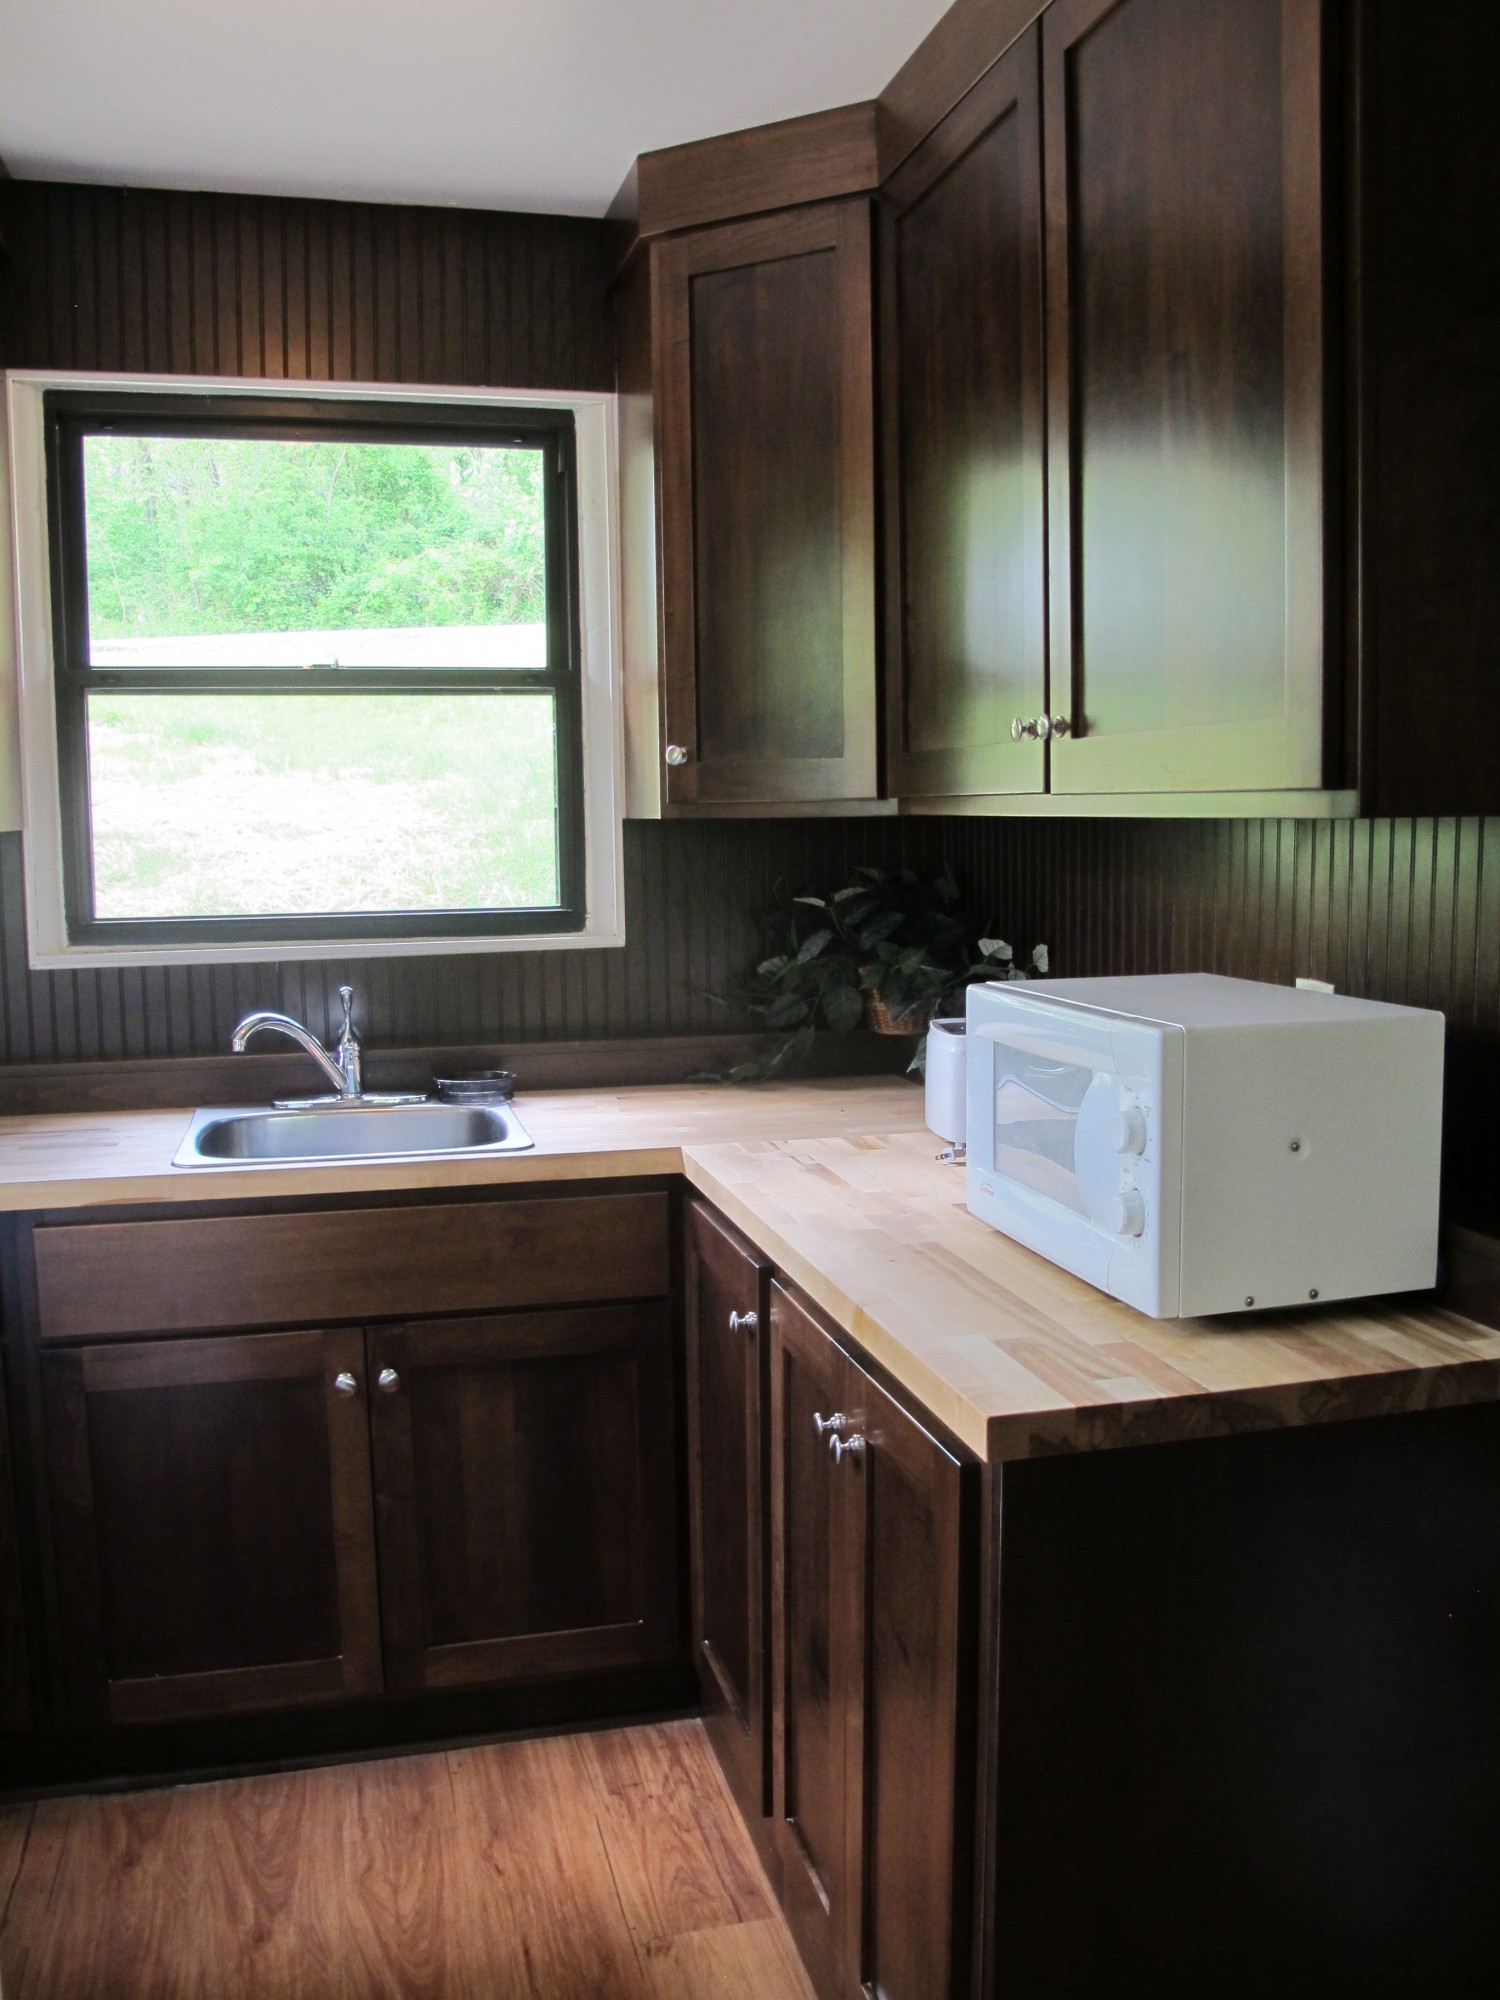 ohio for cabin general nest rental cabins talentneeds about of photo information seneca rentals rent x lake vacation ordinary eagles private vermilion com